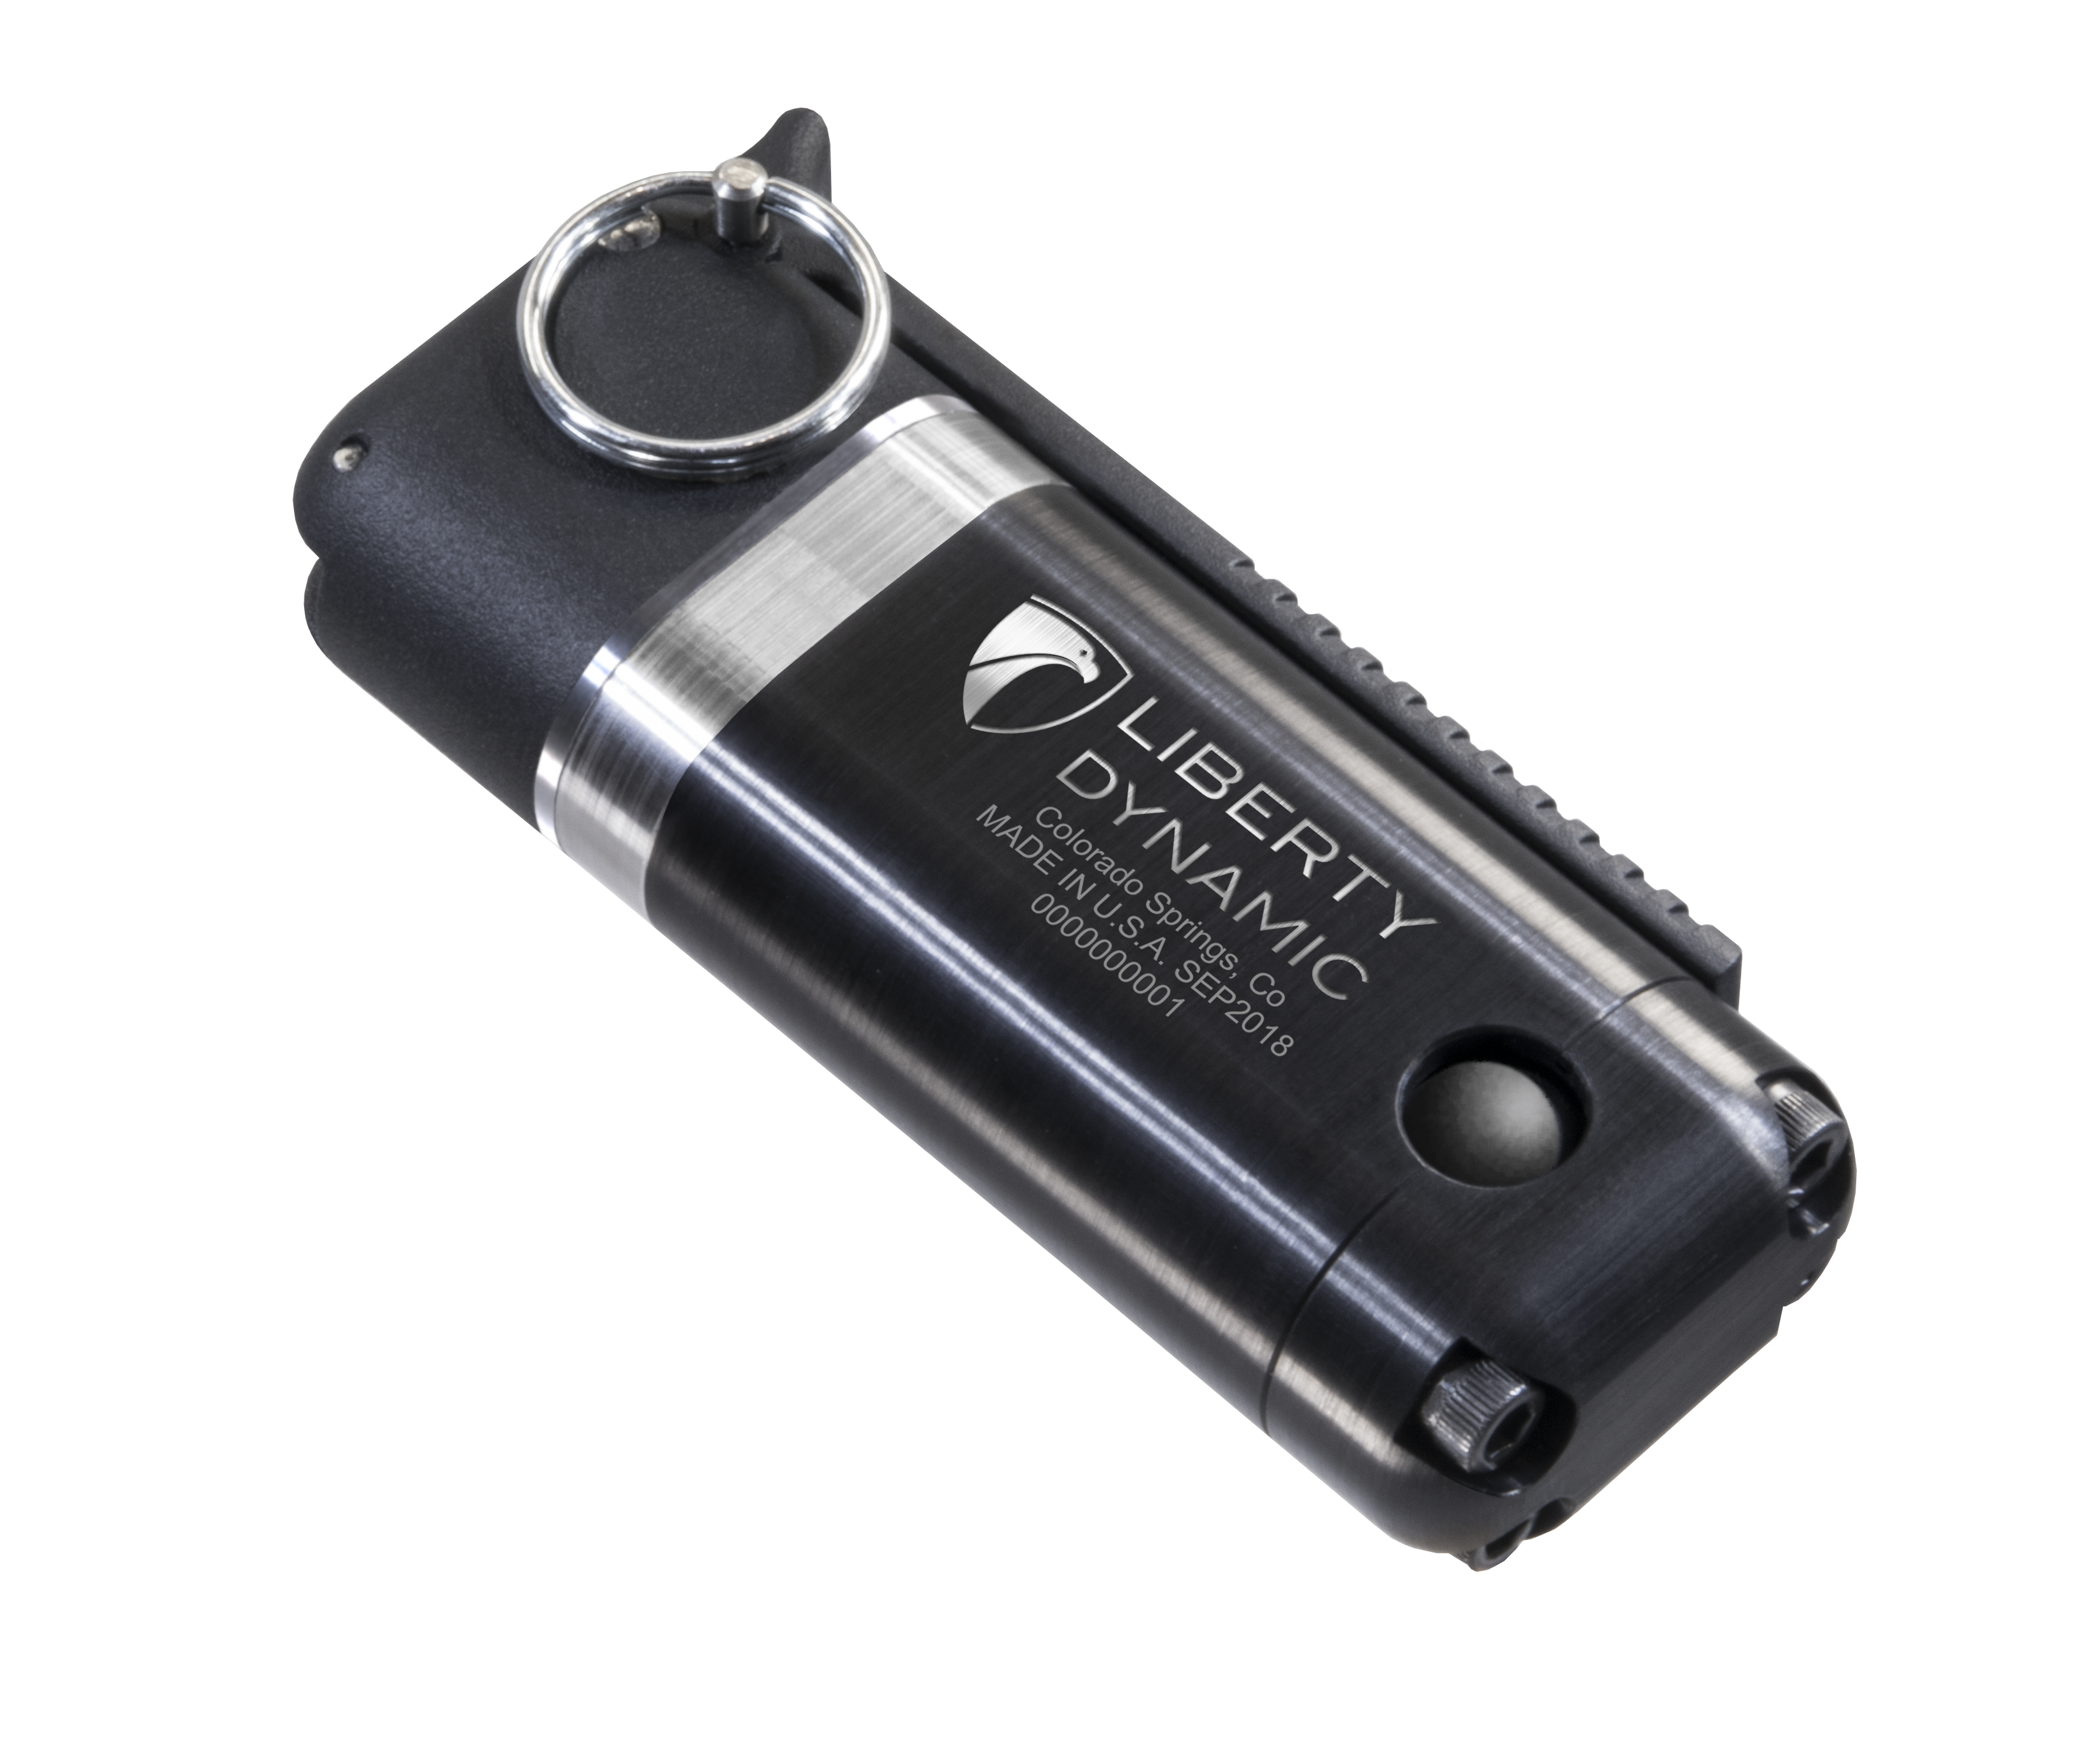 The Enhanced Diversionary Device, by Liberty Dynamic offers users a variety of safety, tactical and timing features not available on present flash bang devices. (Liberty Dynamic)